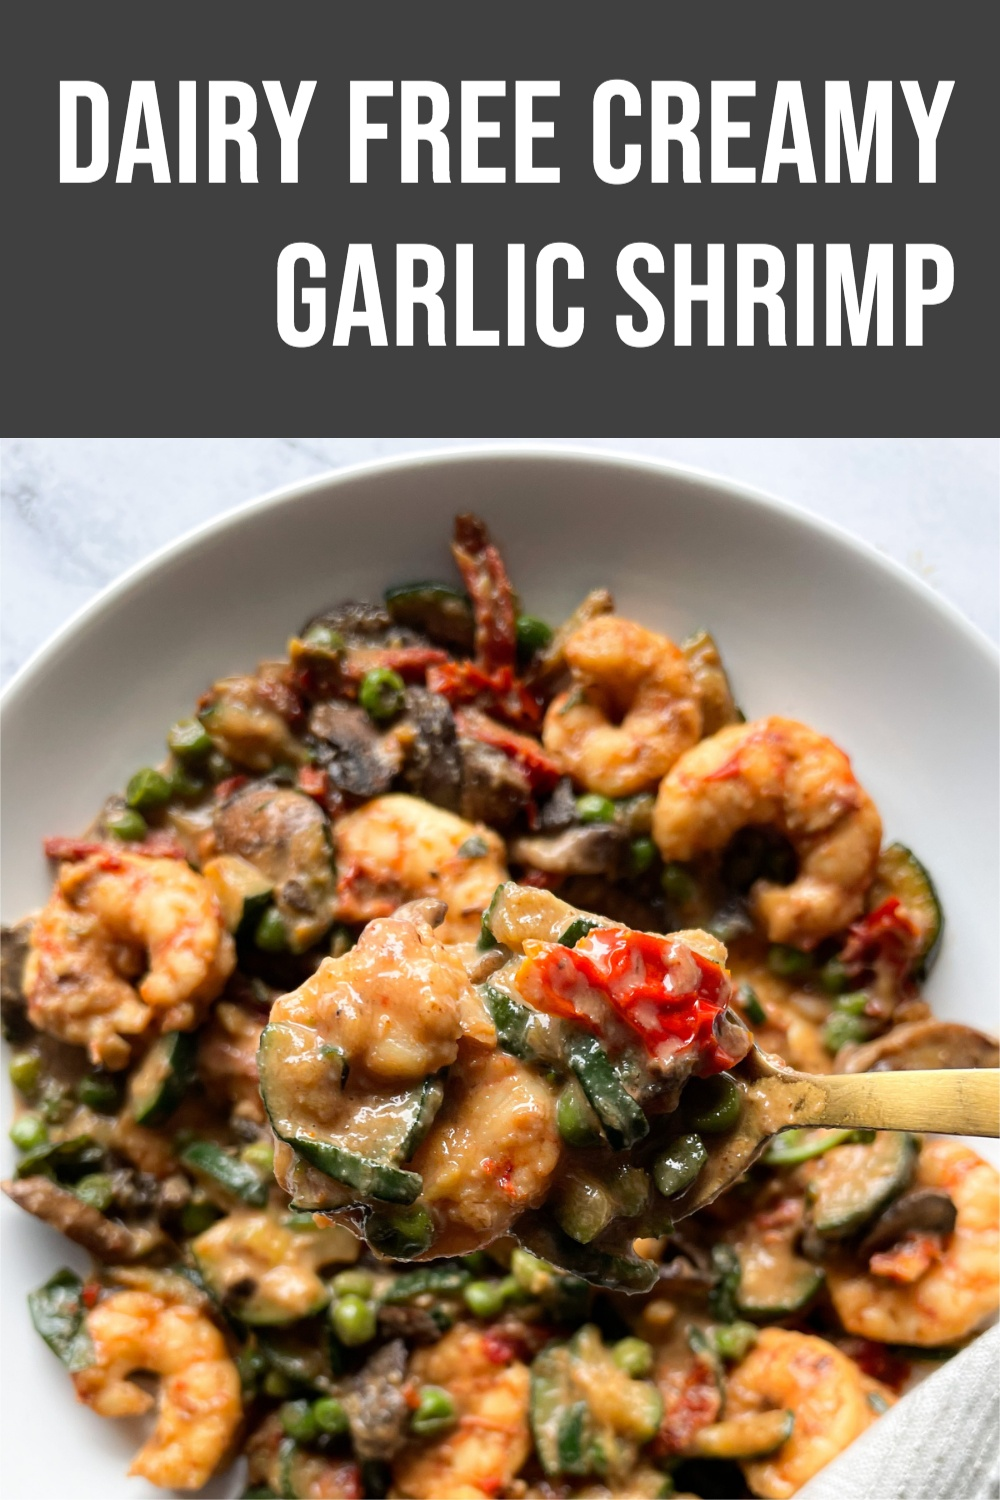 garlic shrimp in plate with gold spoon and text overlay